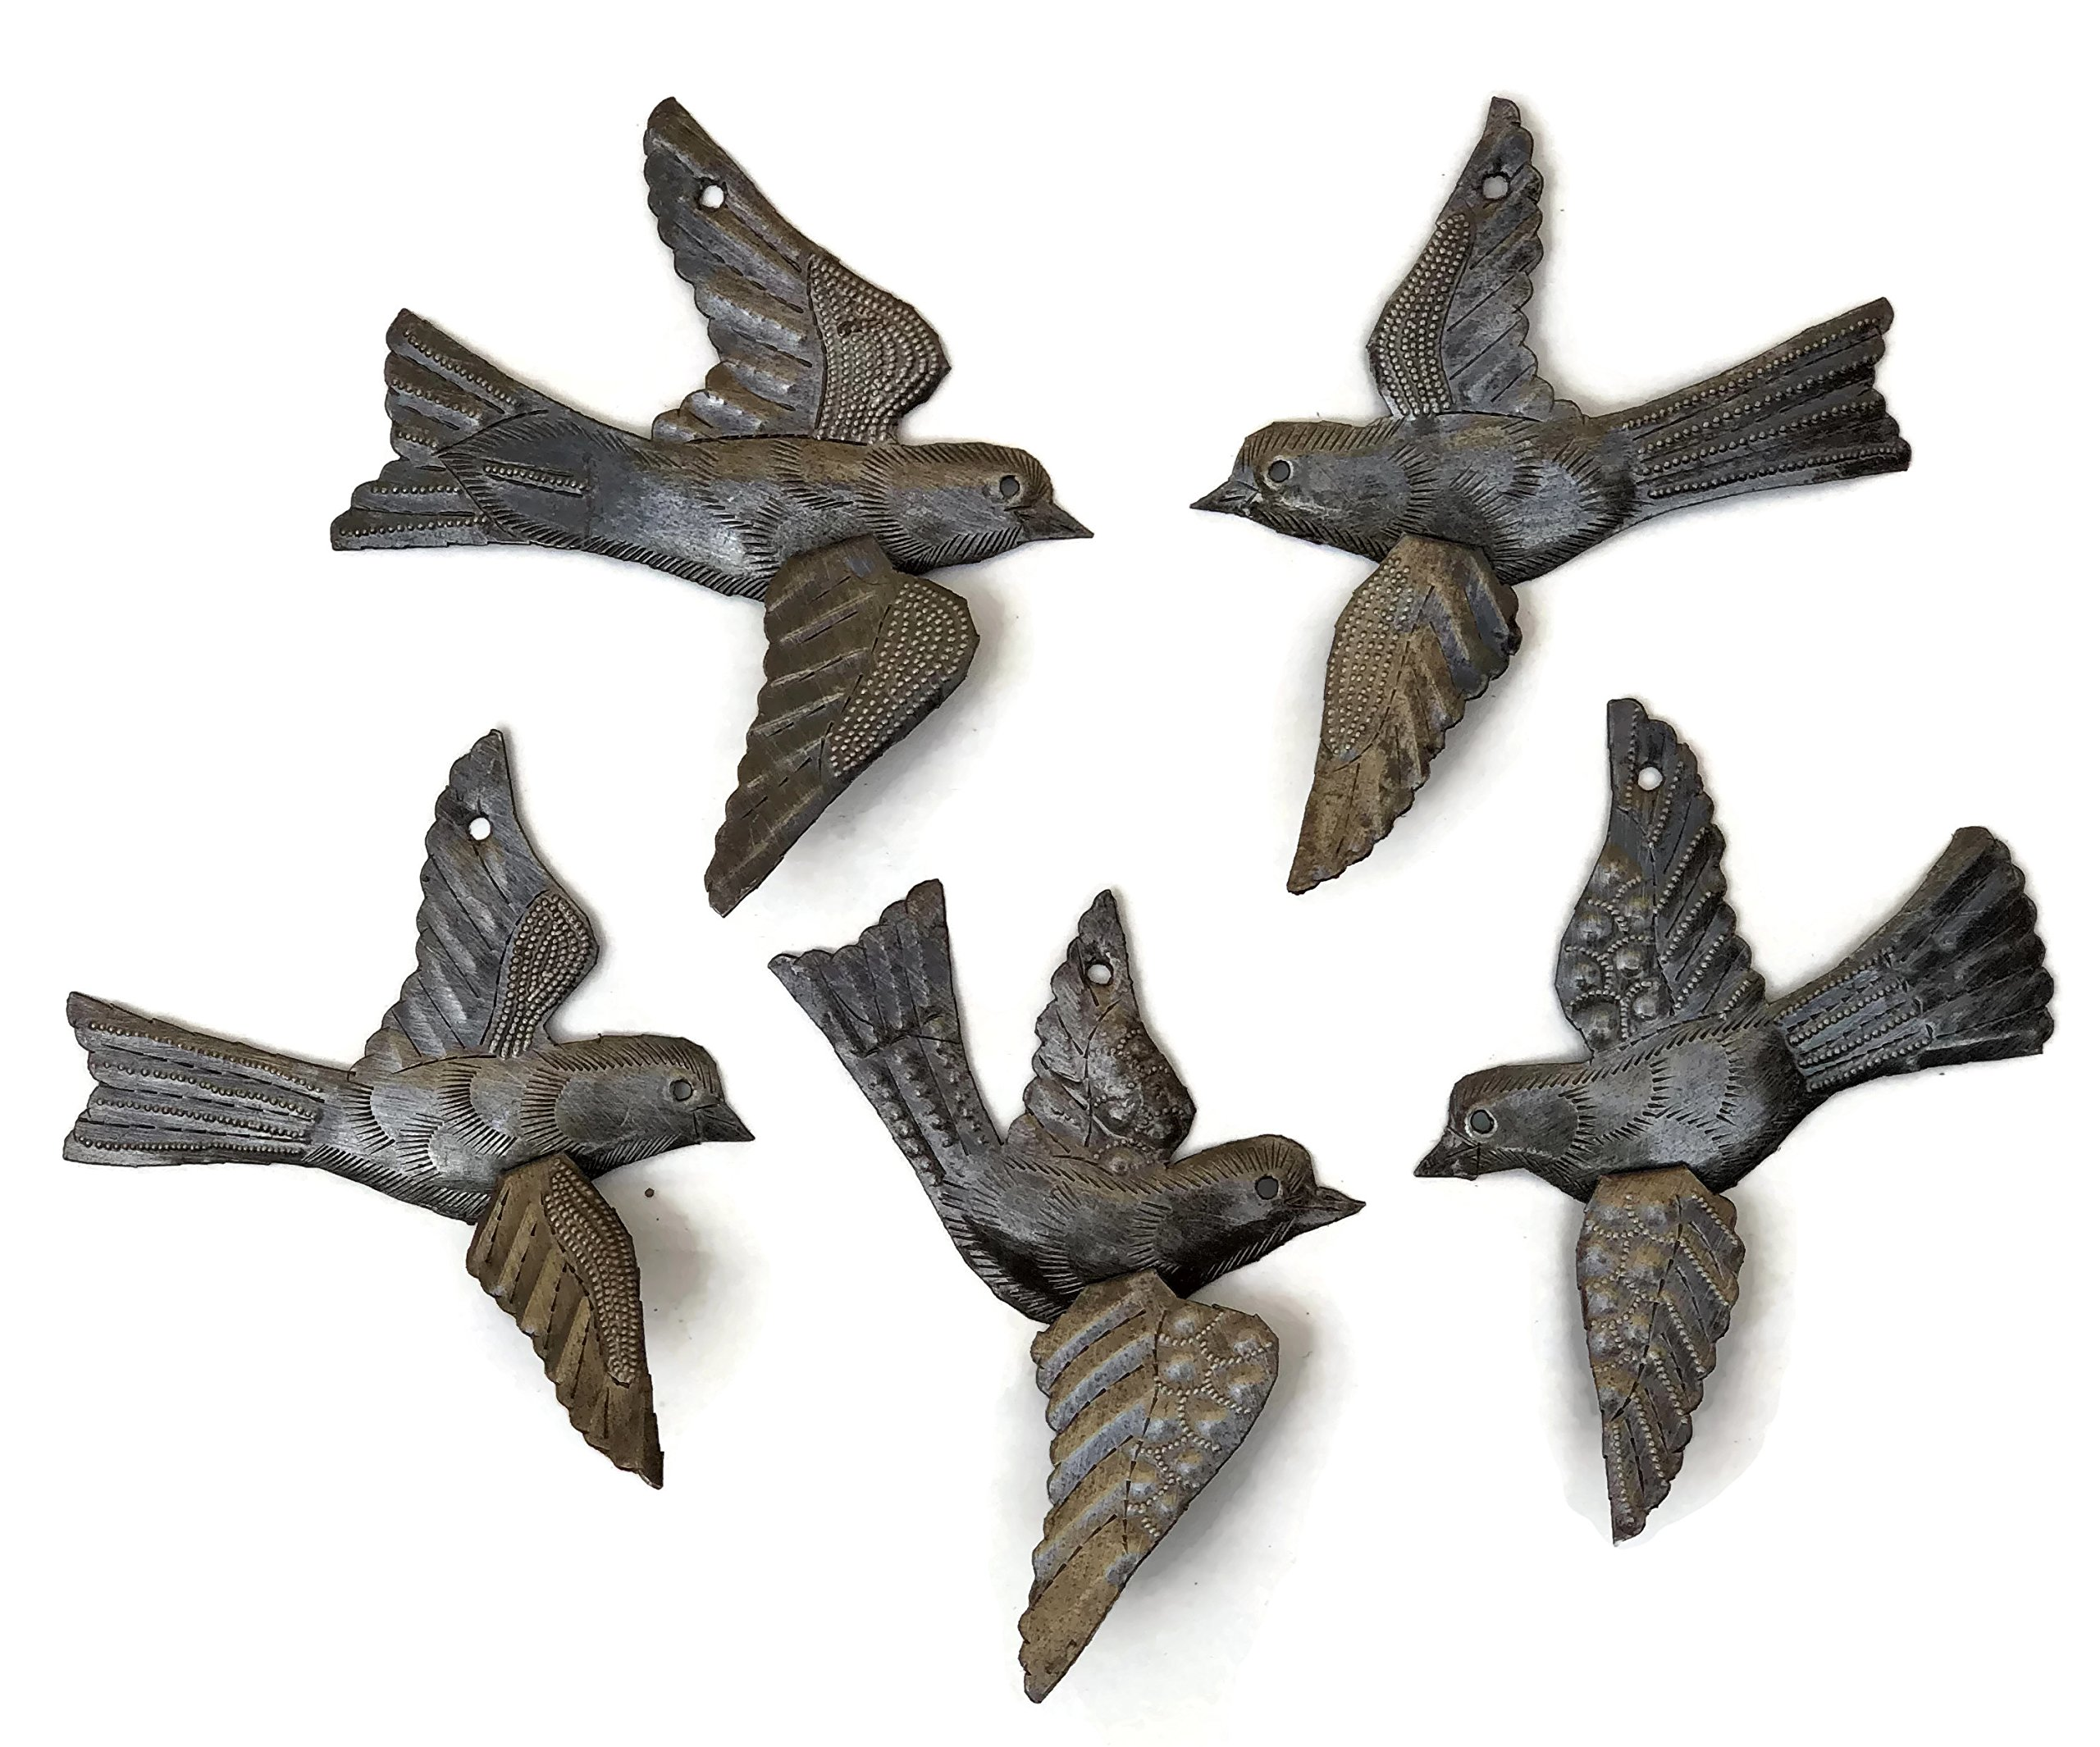 Haitian Birds Recycled Steel Drum Art 3-D Wings Set of 5 Metal Art Wall Decor 5 x 4.5 inches by it's cactus - metal art haiti